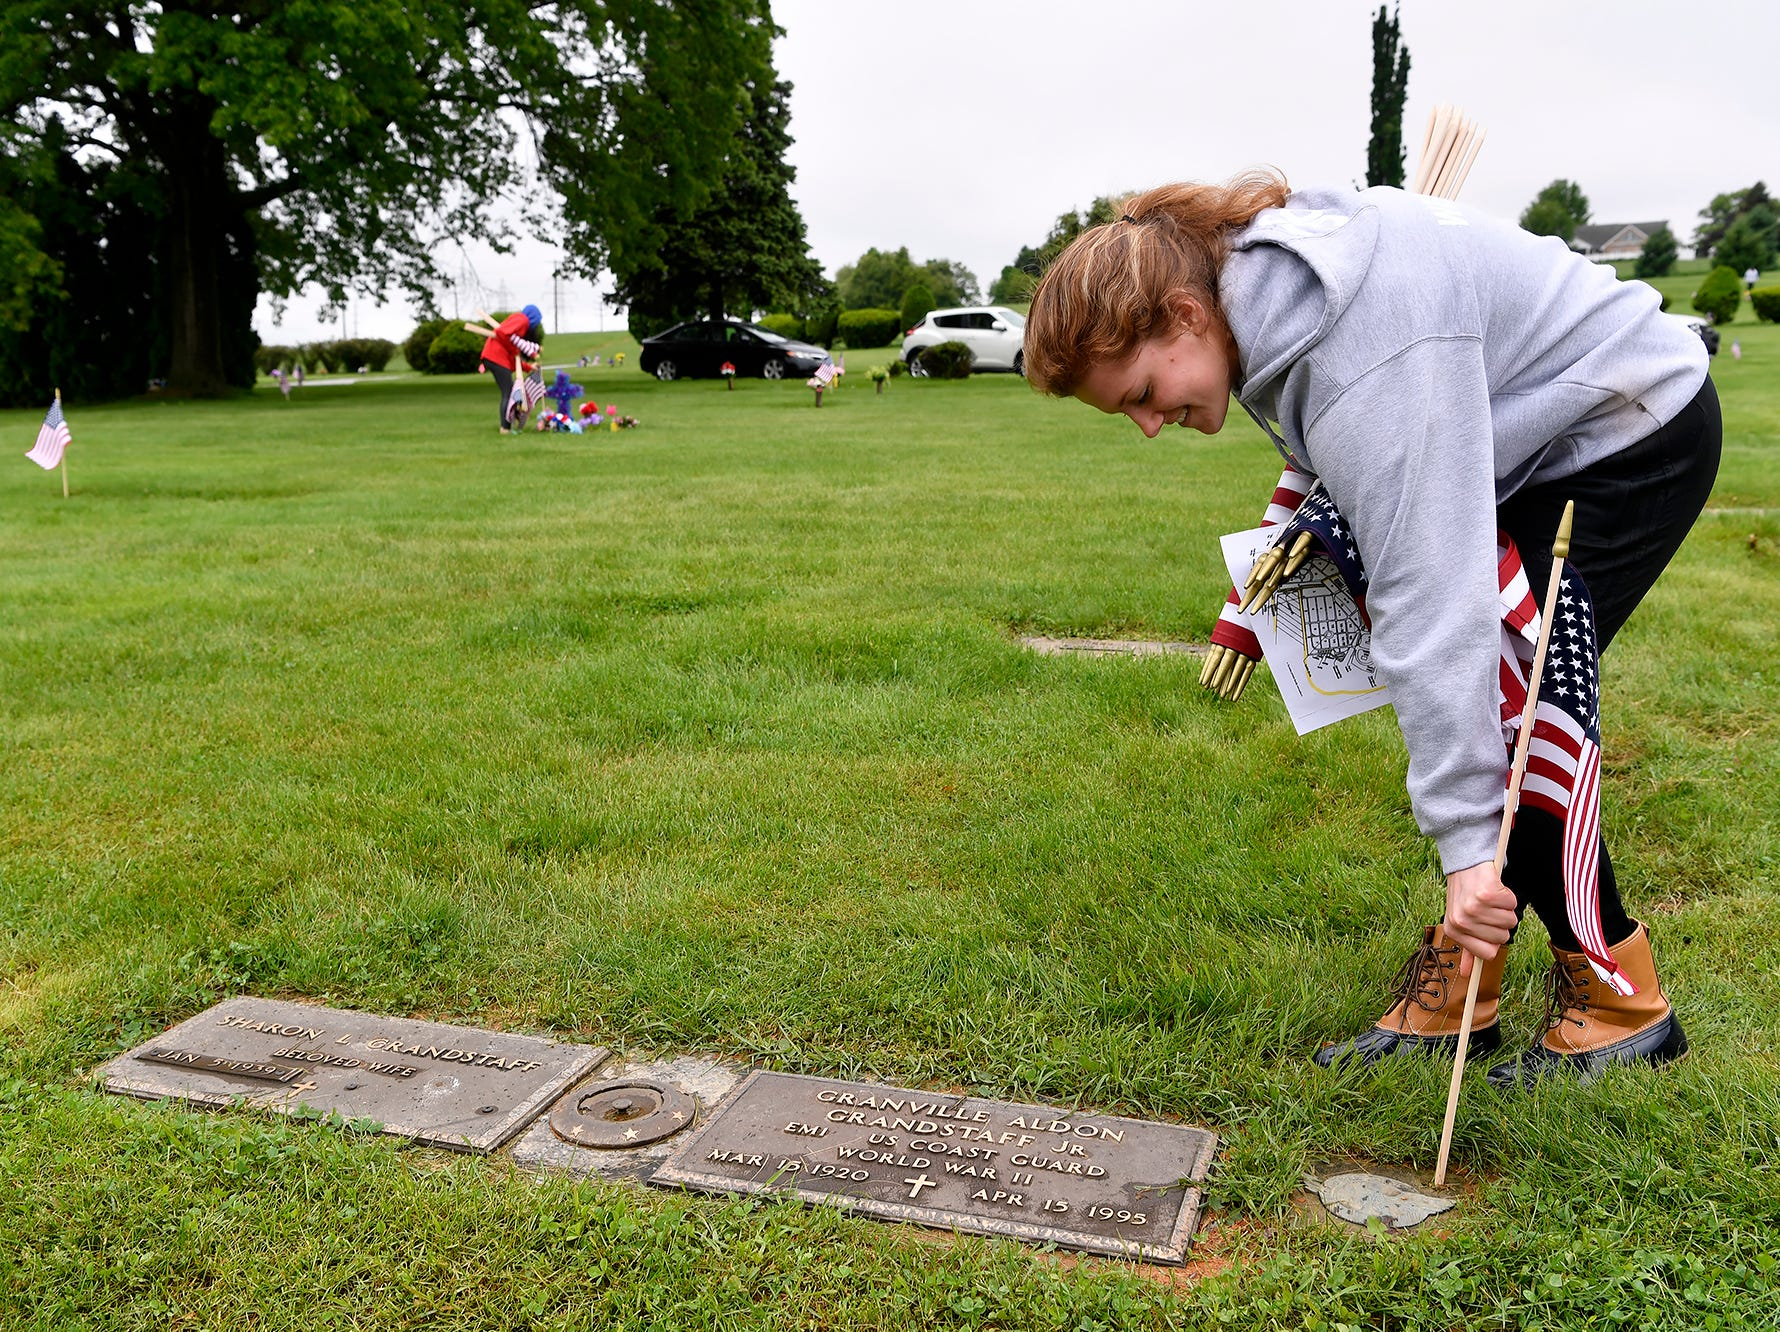 Sierra Weaver, 15, helps Gold Star mother Deb Etheridge, not shown, place flags on veteran graves at Prospect Hill Cemetery in preparation for Memorial Day, Monday, May 13, 2019. Weaver and two other National Honors Society members from Dover High School assisted in the flag placing.John A. Pavoncello photo